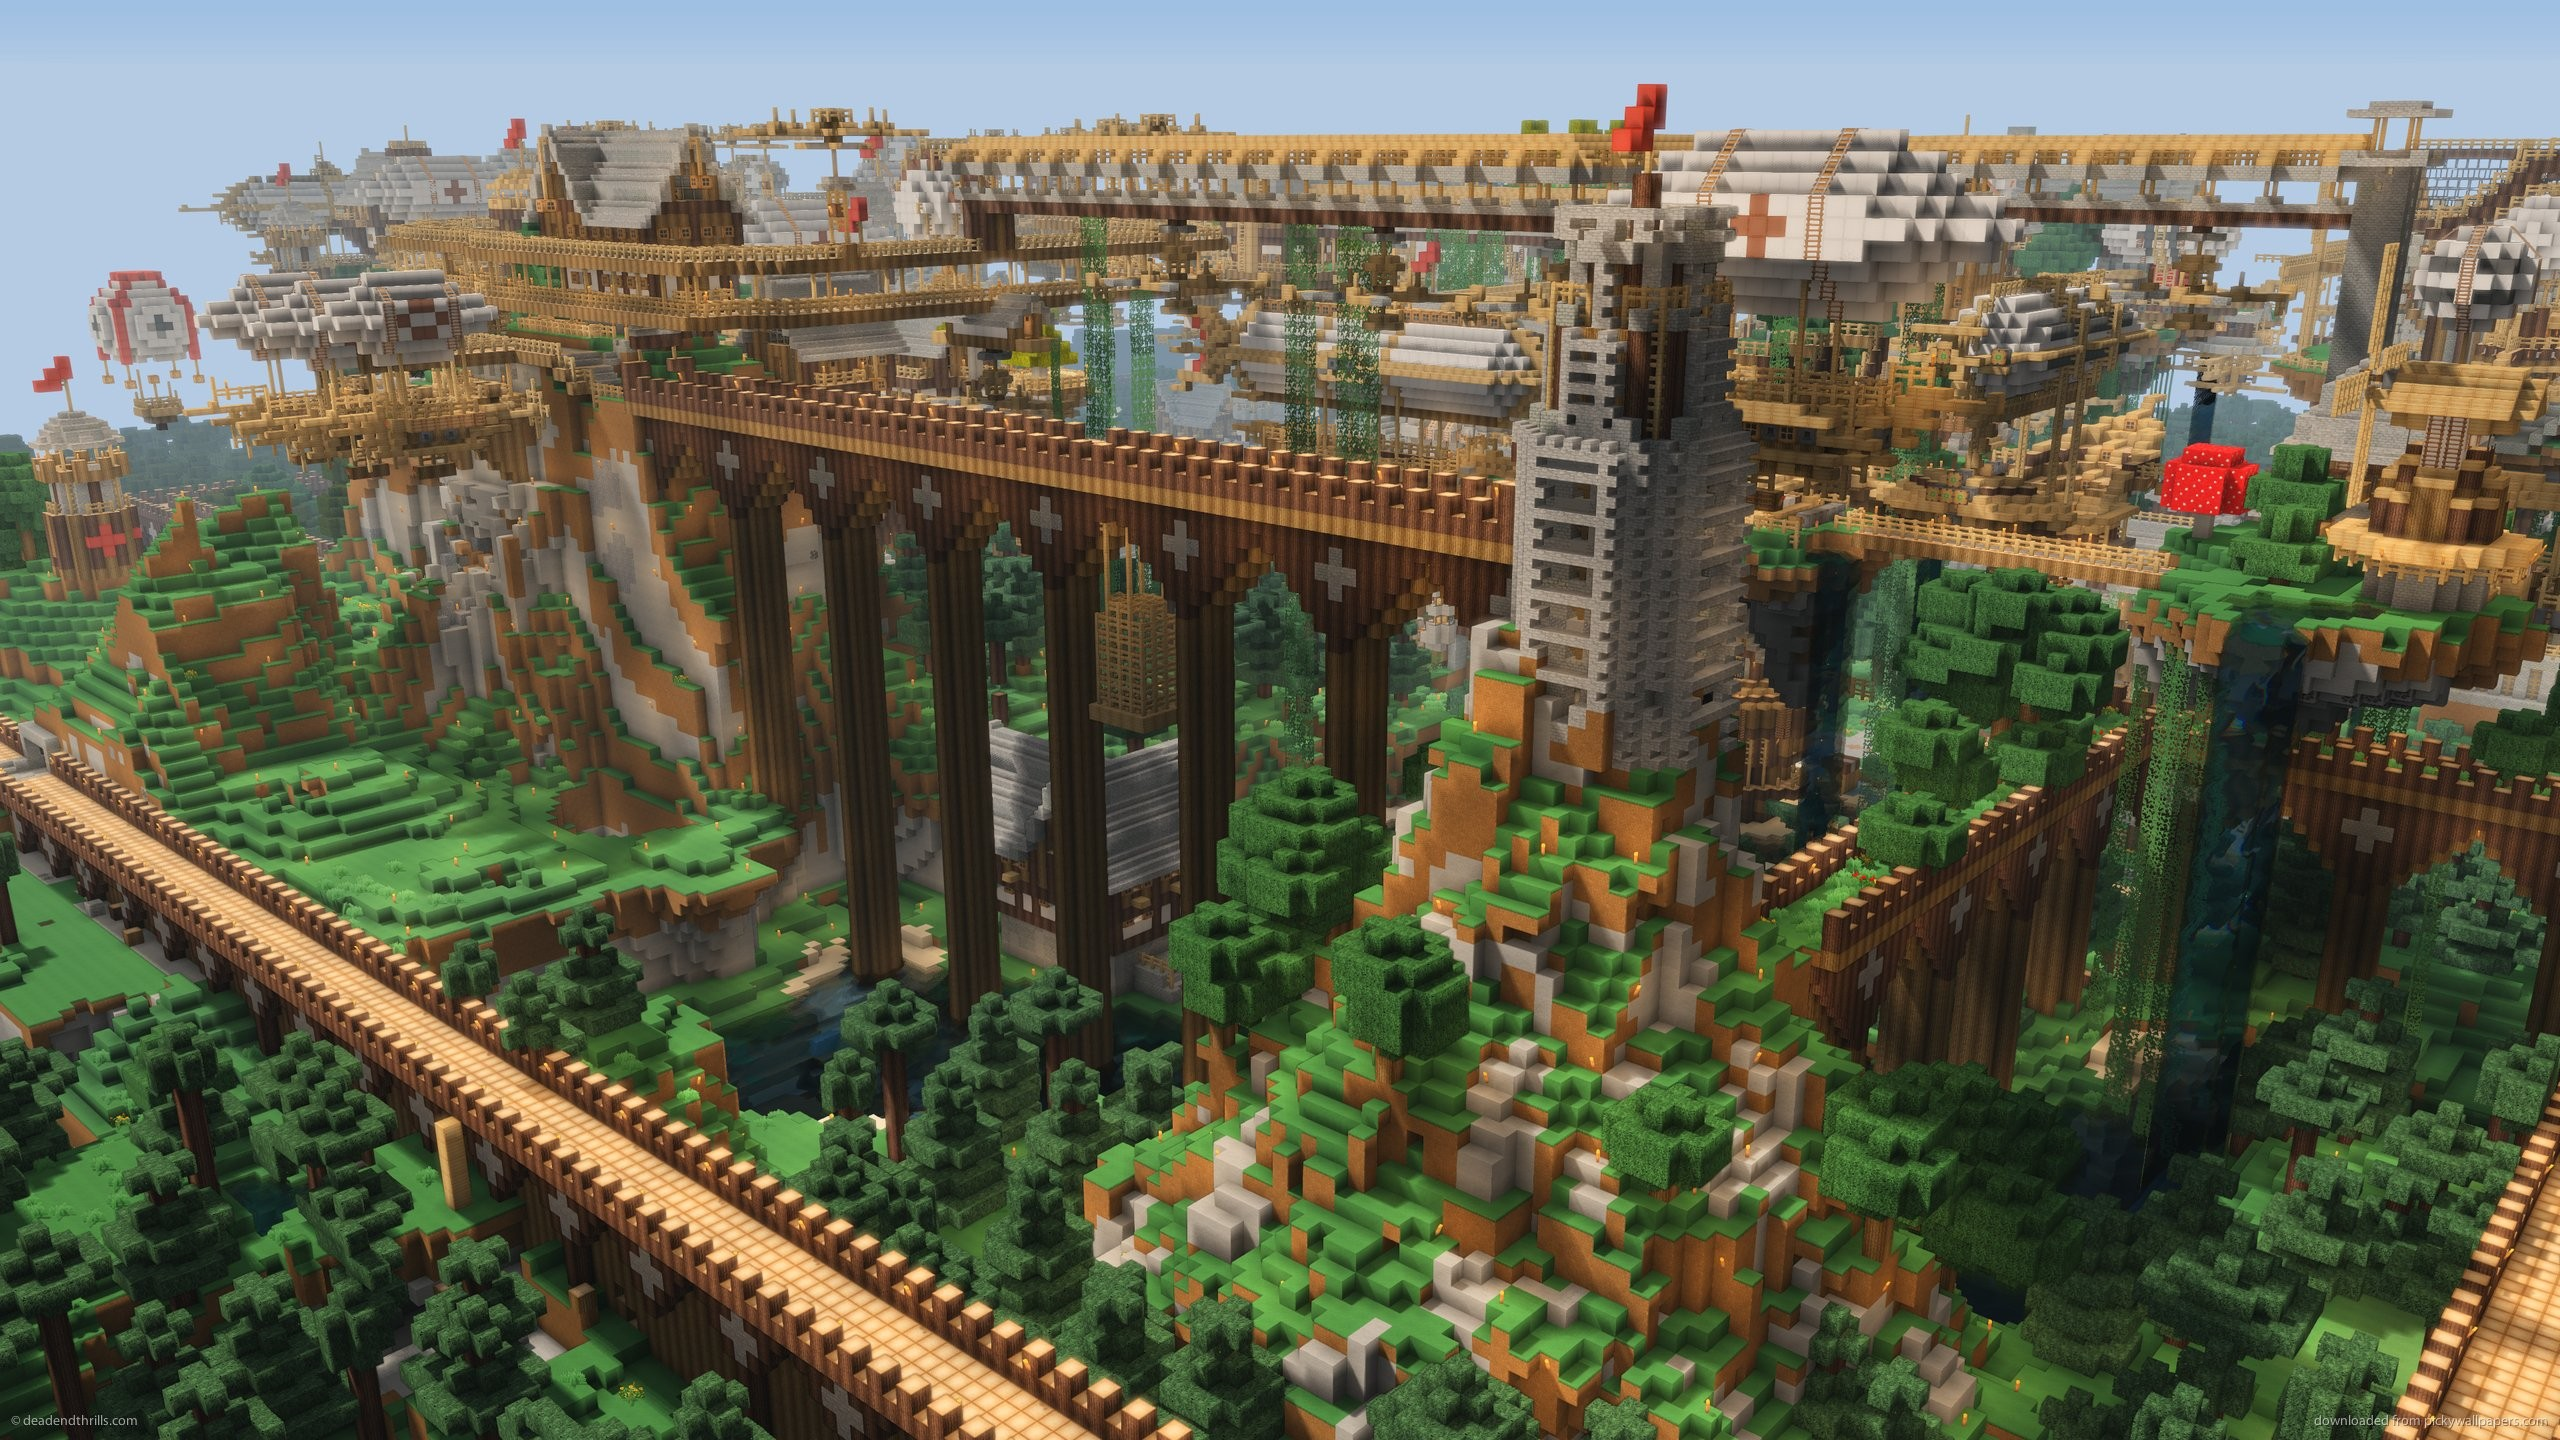 2560x1440 Minecraft Wallpaper 1366X768 760279 · Download · Abstract ...